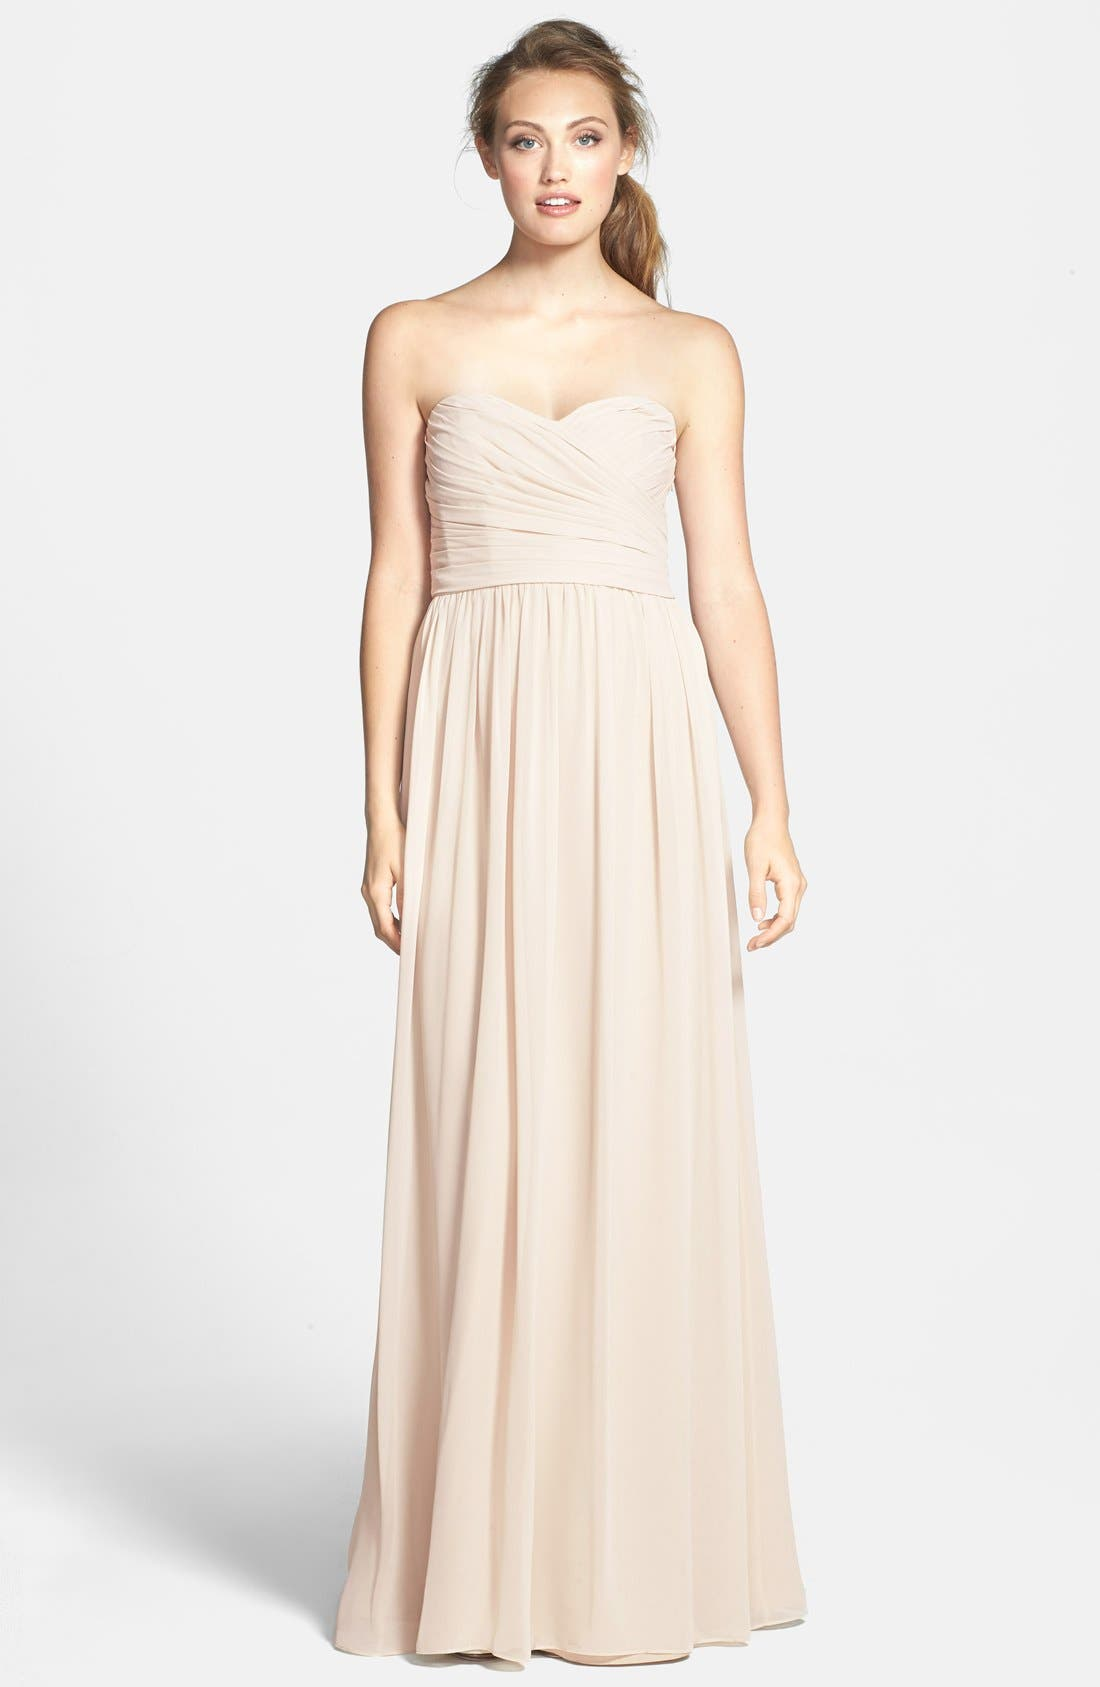 Alternate Image 1 Selected - Monique Lhuillier Bridesmaids Strapless Ruched Chiffon Sweetheart Gown